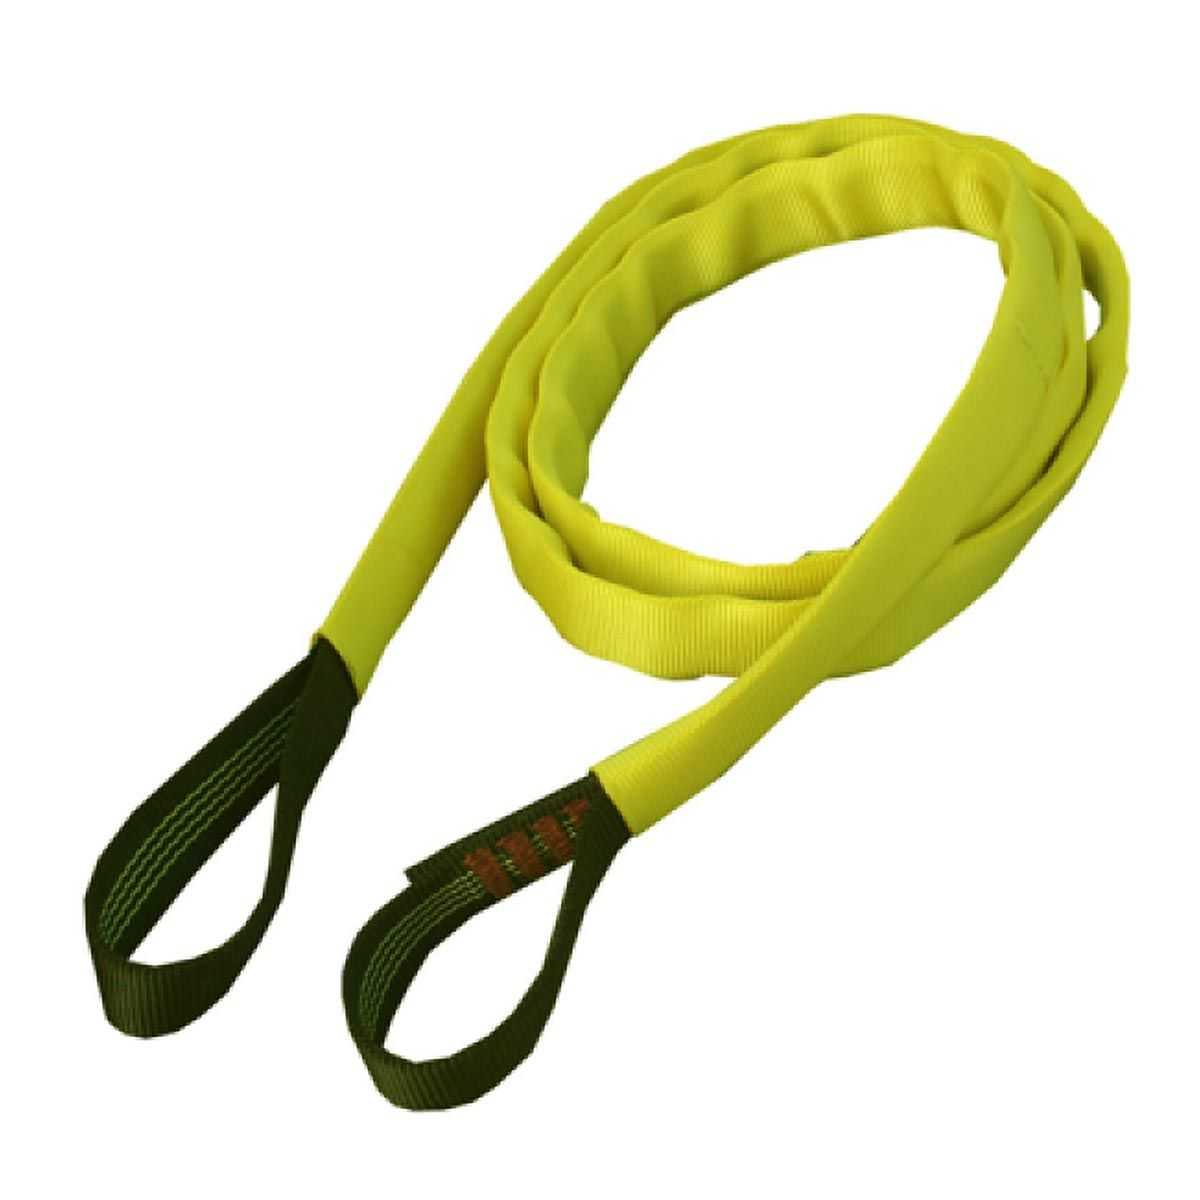 Lyon Soft Sling with Sleeve 1.2m x25mm 30kN Black/Yellow